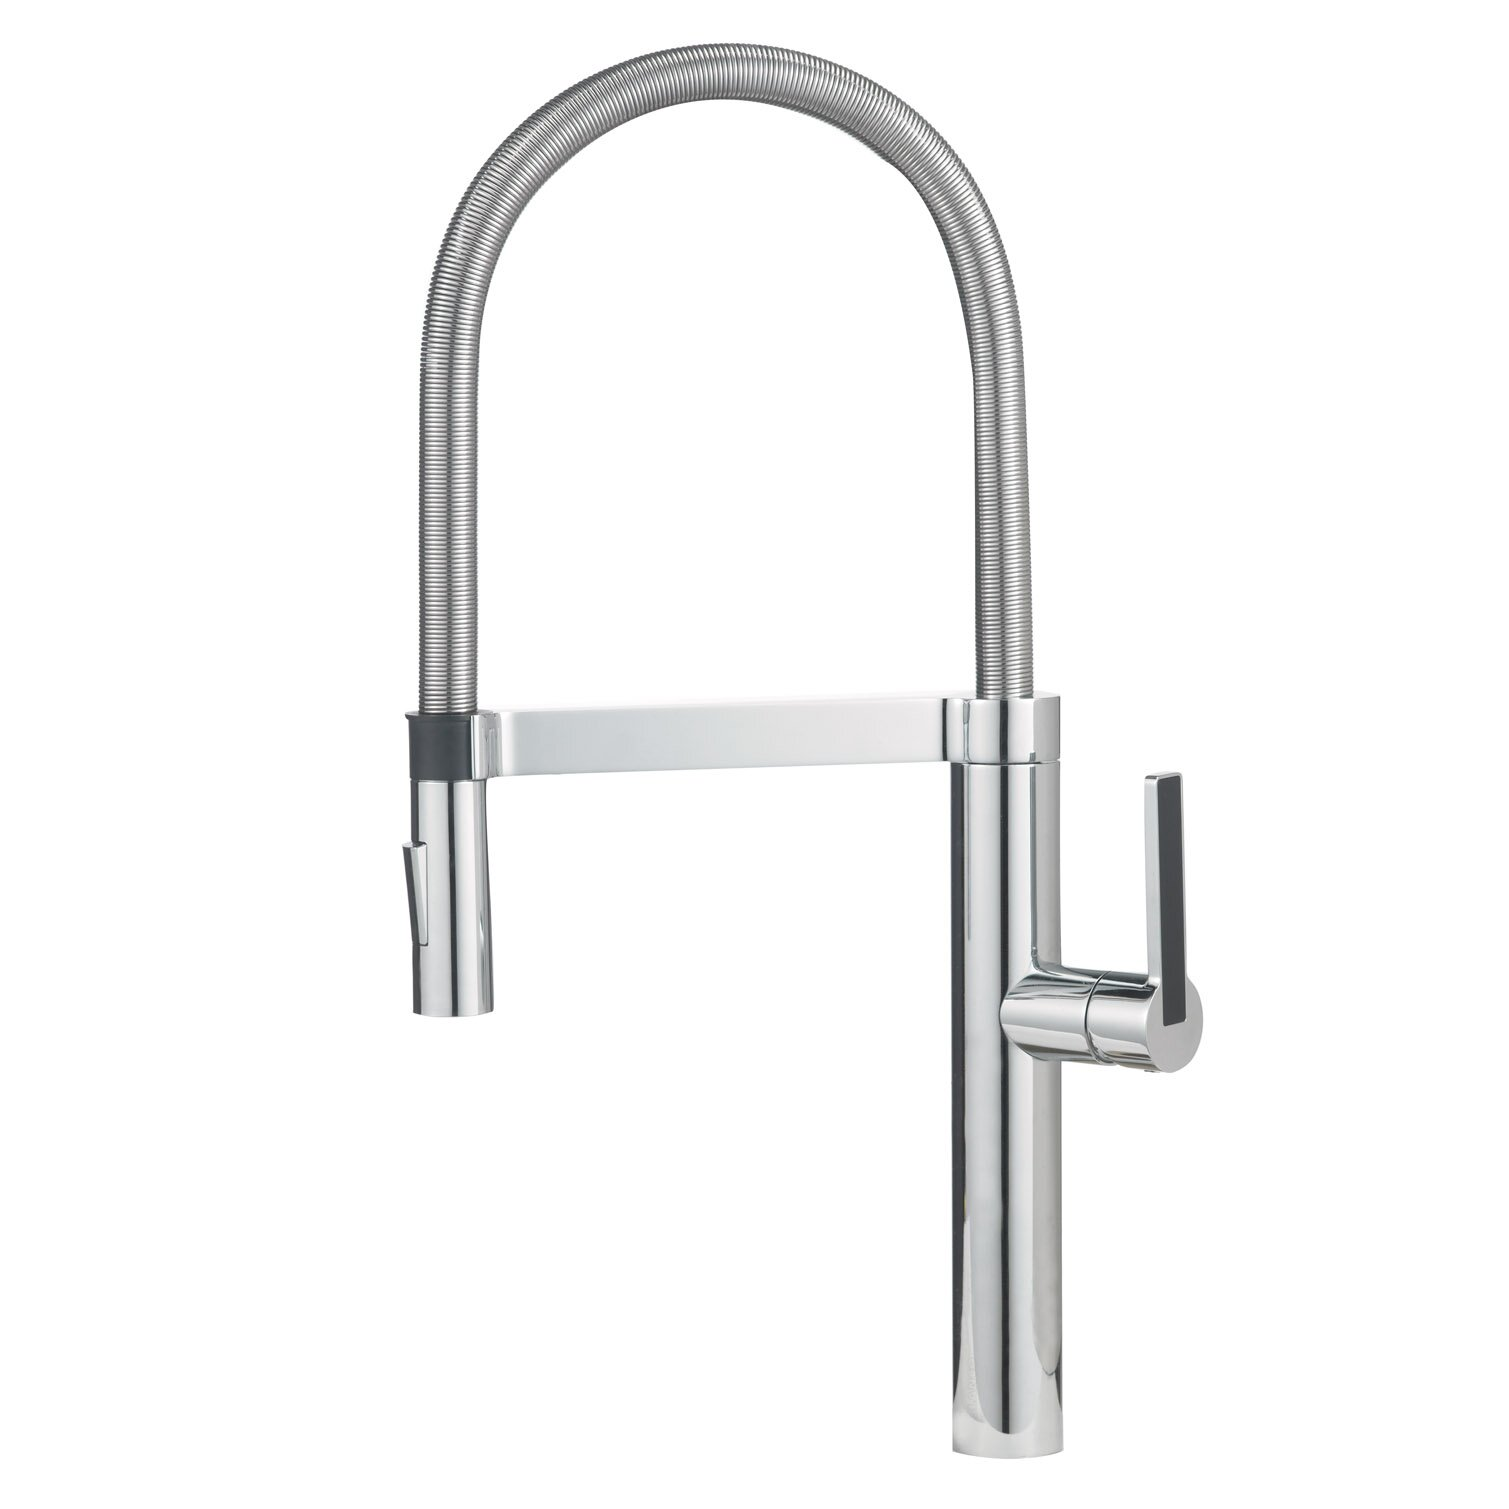 Blanco Kitchen Faucet Reviews : ... Single Handle Deck Mounted Kitchen Faucet with Dual Spray by Blanco